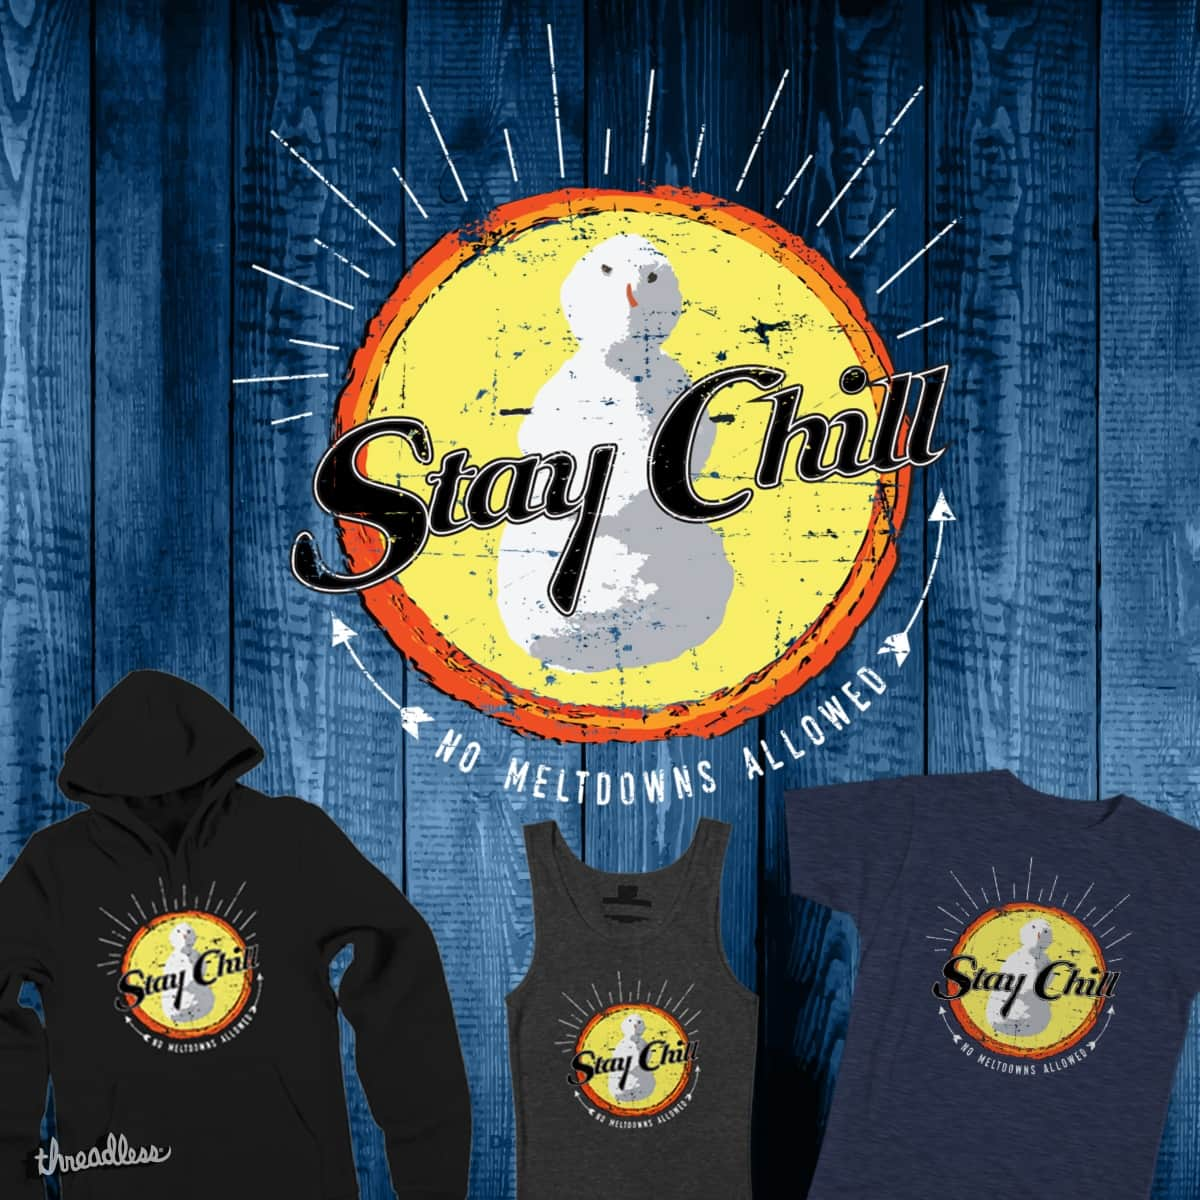 Stay Chill by MidnightMoon on Threadless